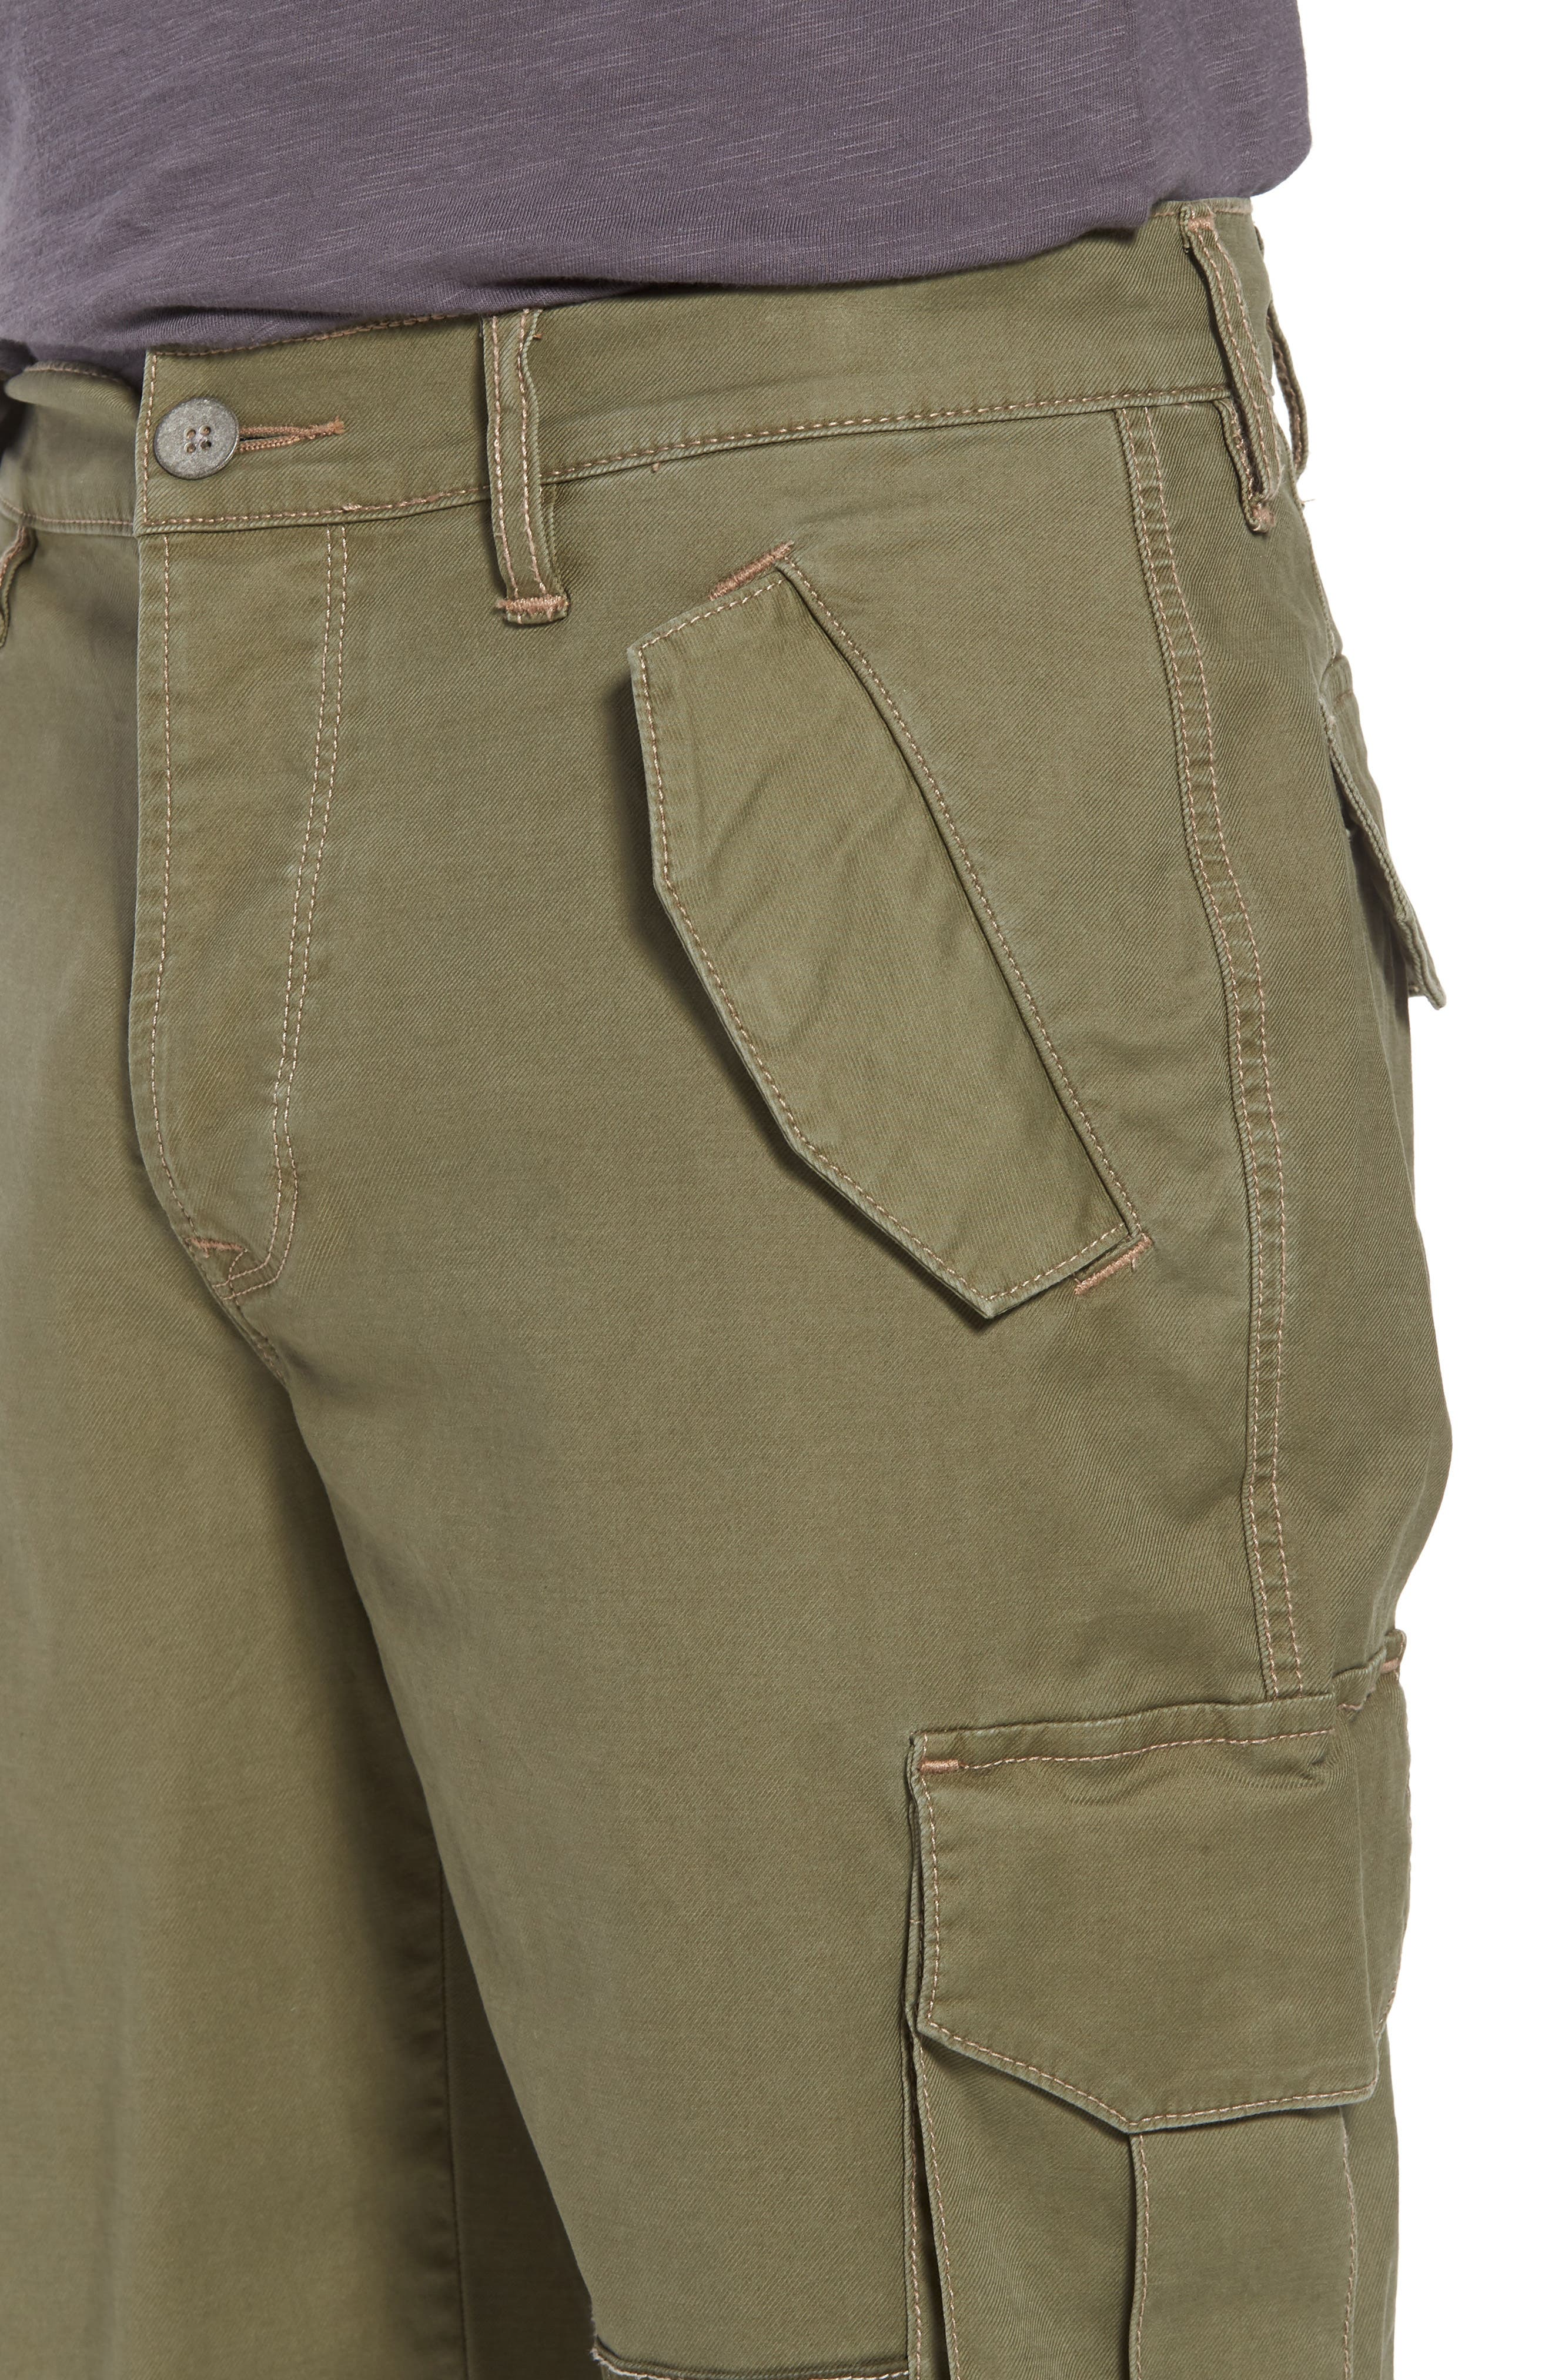 Slim Fit Cargo Shorts,                             Alternate thumbnail 4, color,                             359